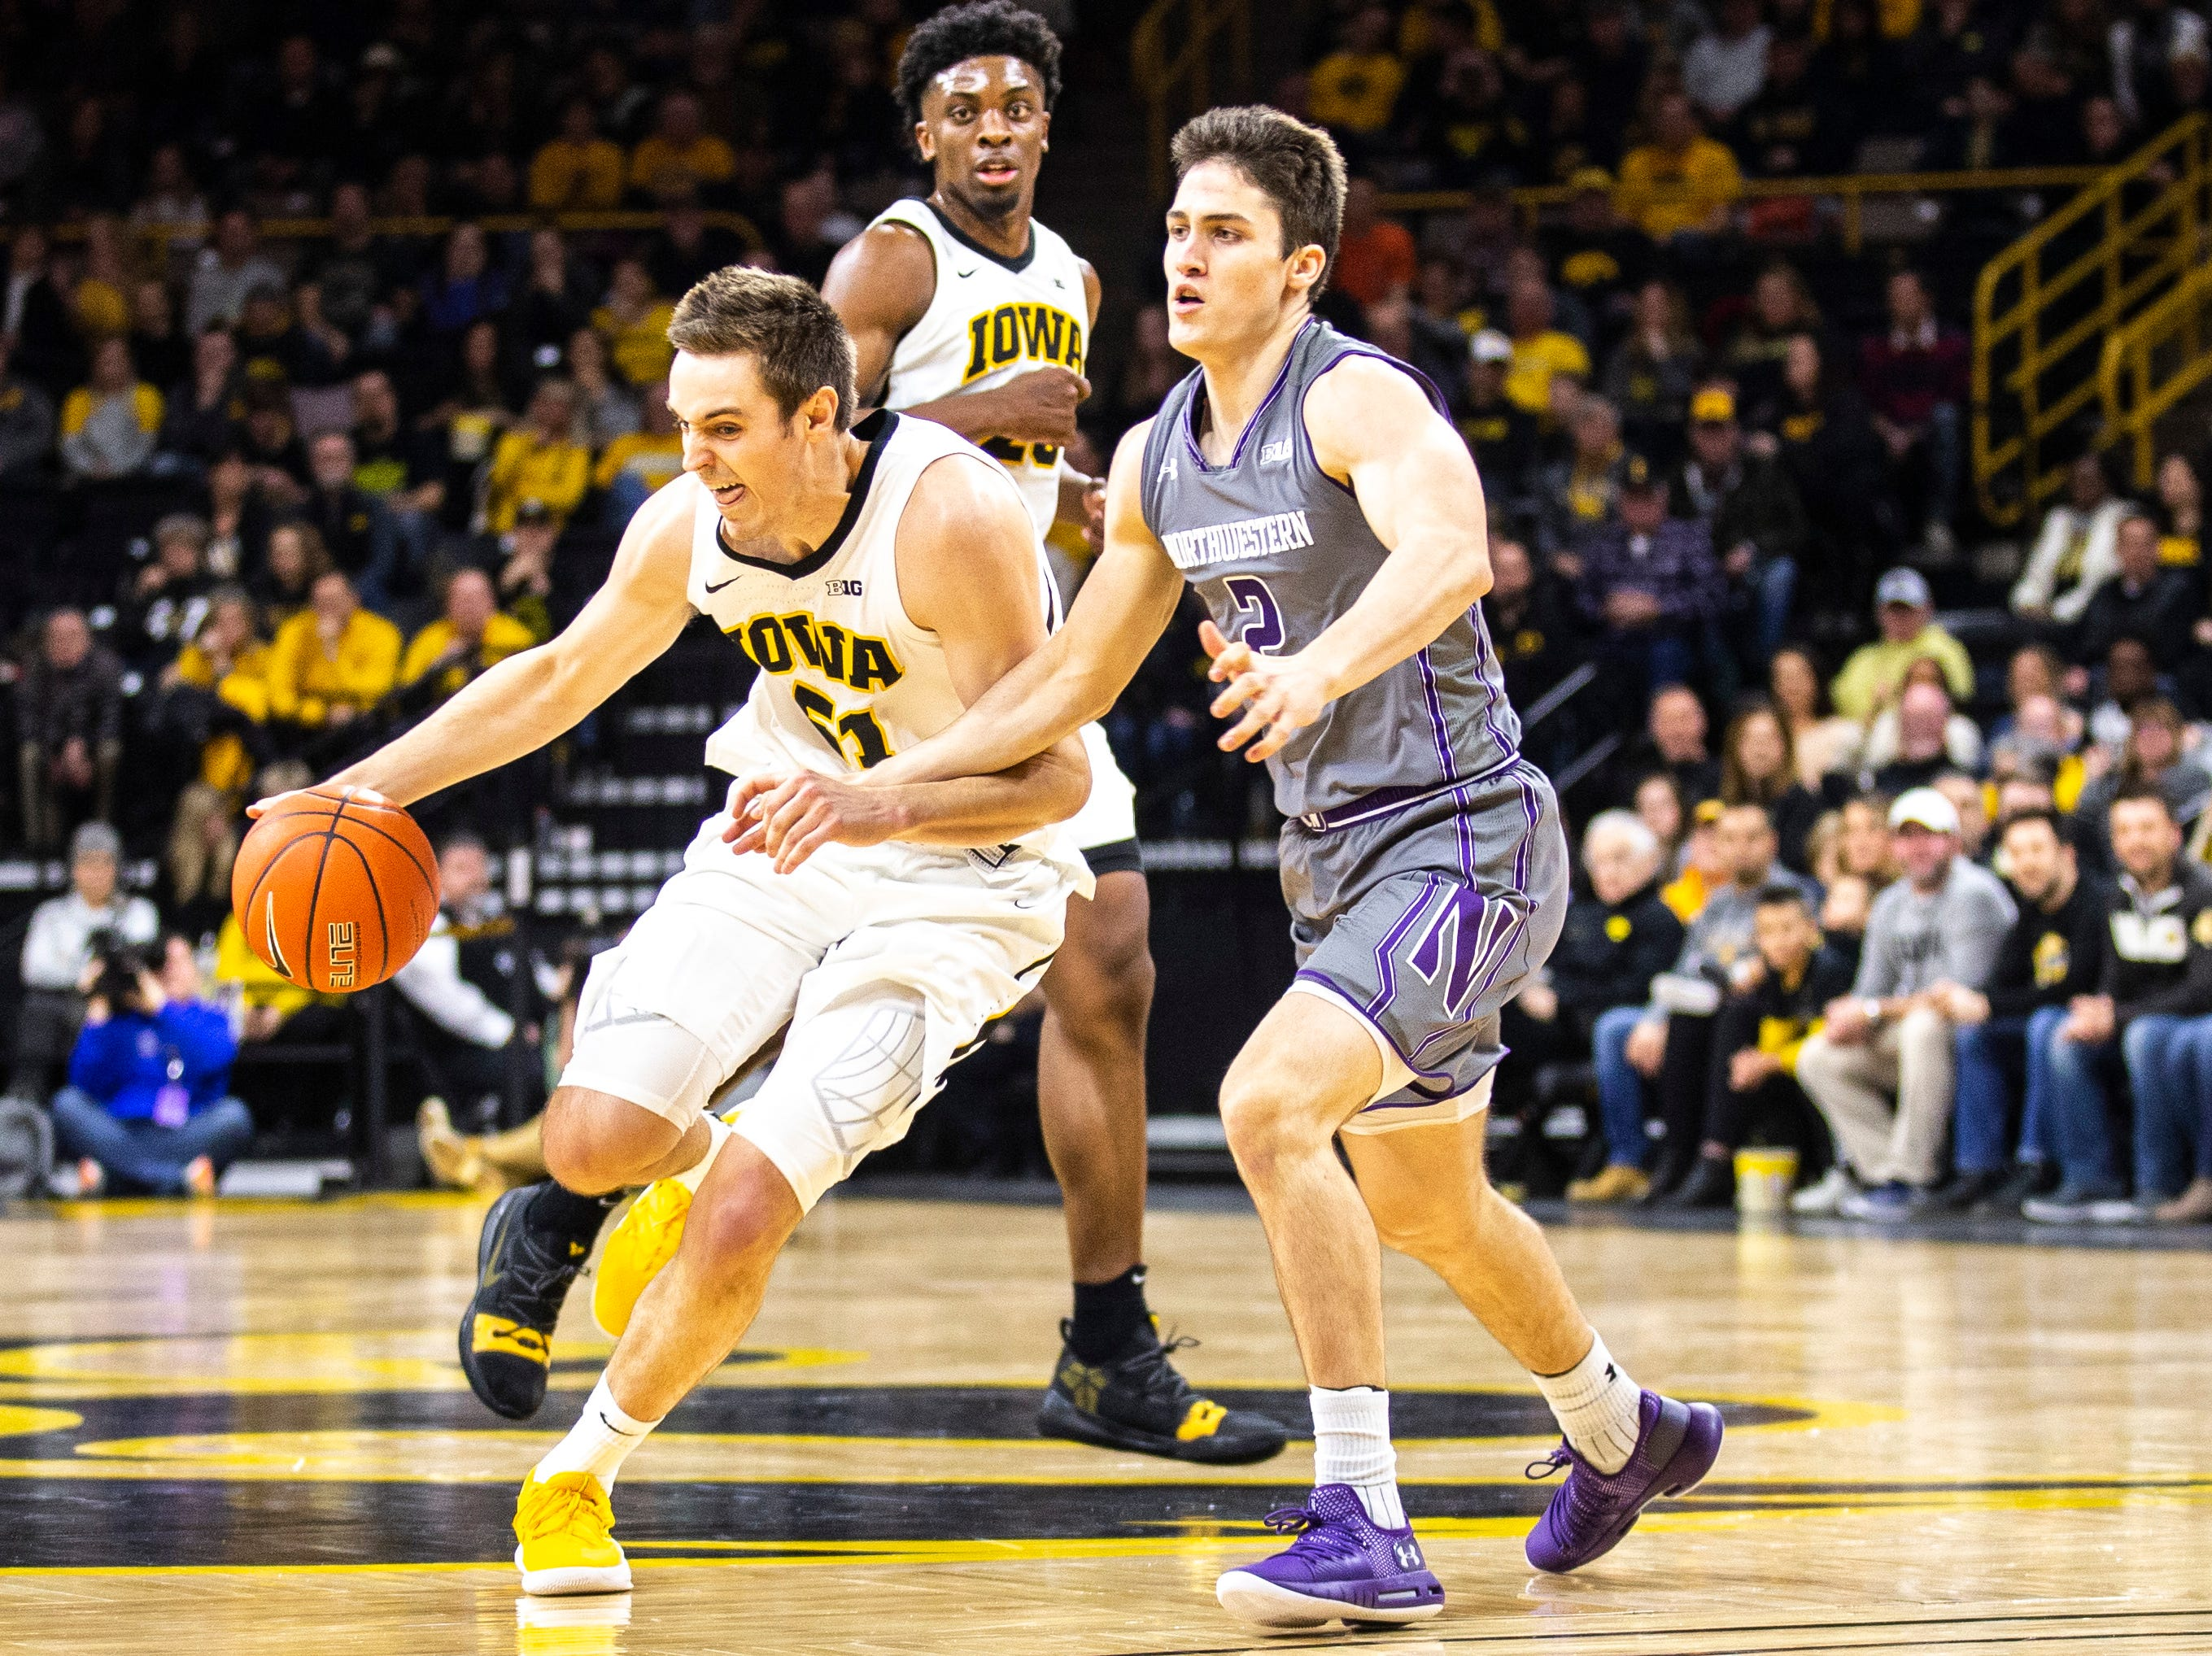 Iowa forward Nicholas Baer (51) drives to the basket while Northwestern guard Ryan Greer (2) defends during a NCAA Big Ten Conference men's basketball game on Sunday, Feb. 10, 2019 at Carver-Hawkeye Arena in Iowa City, Iowa.